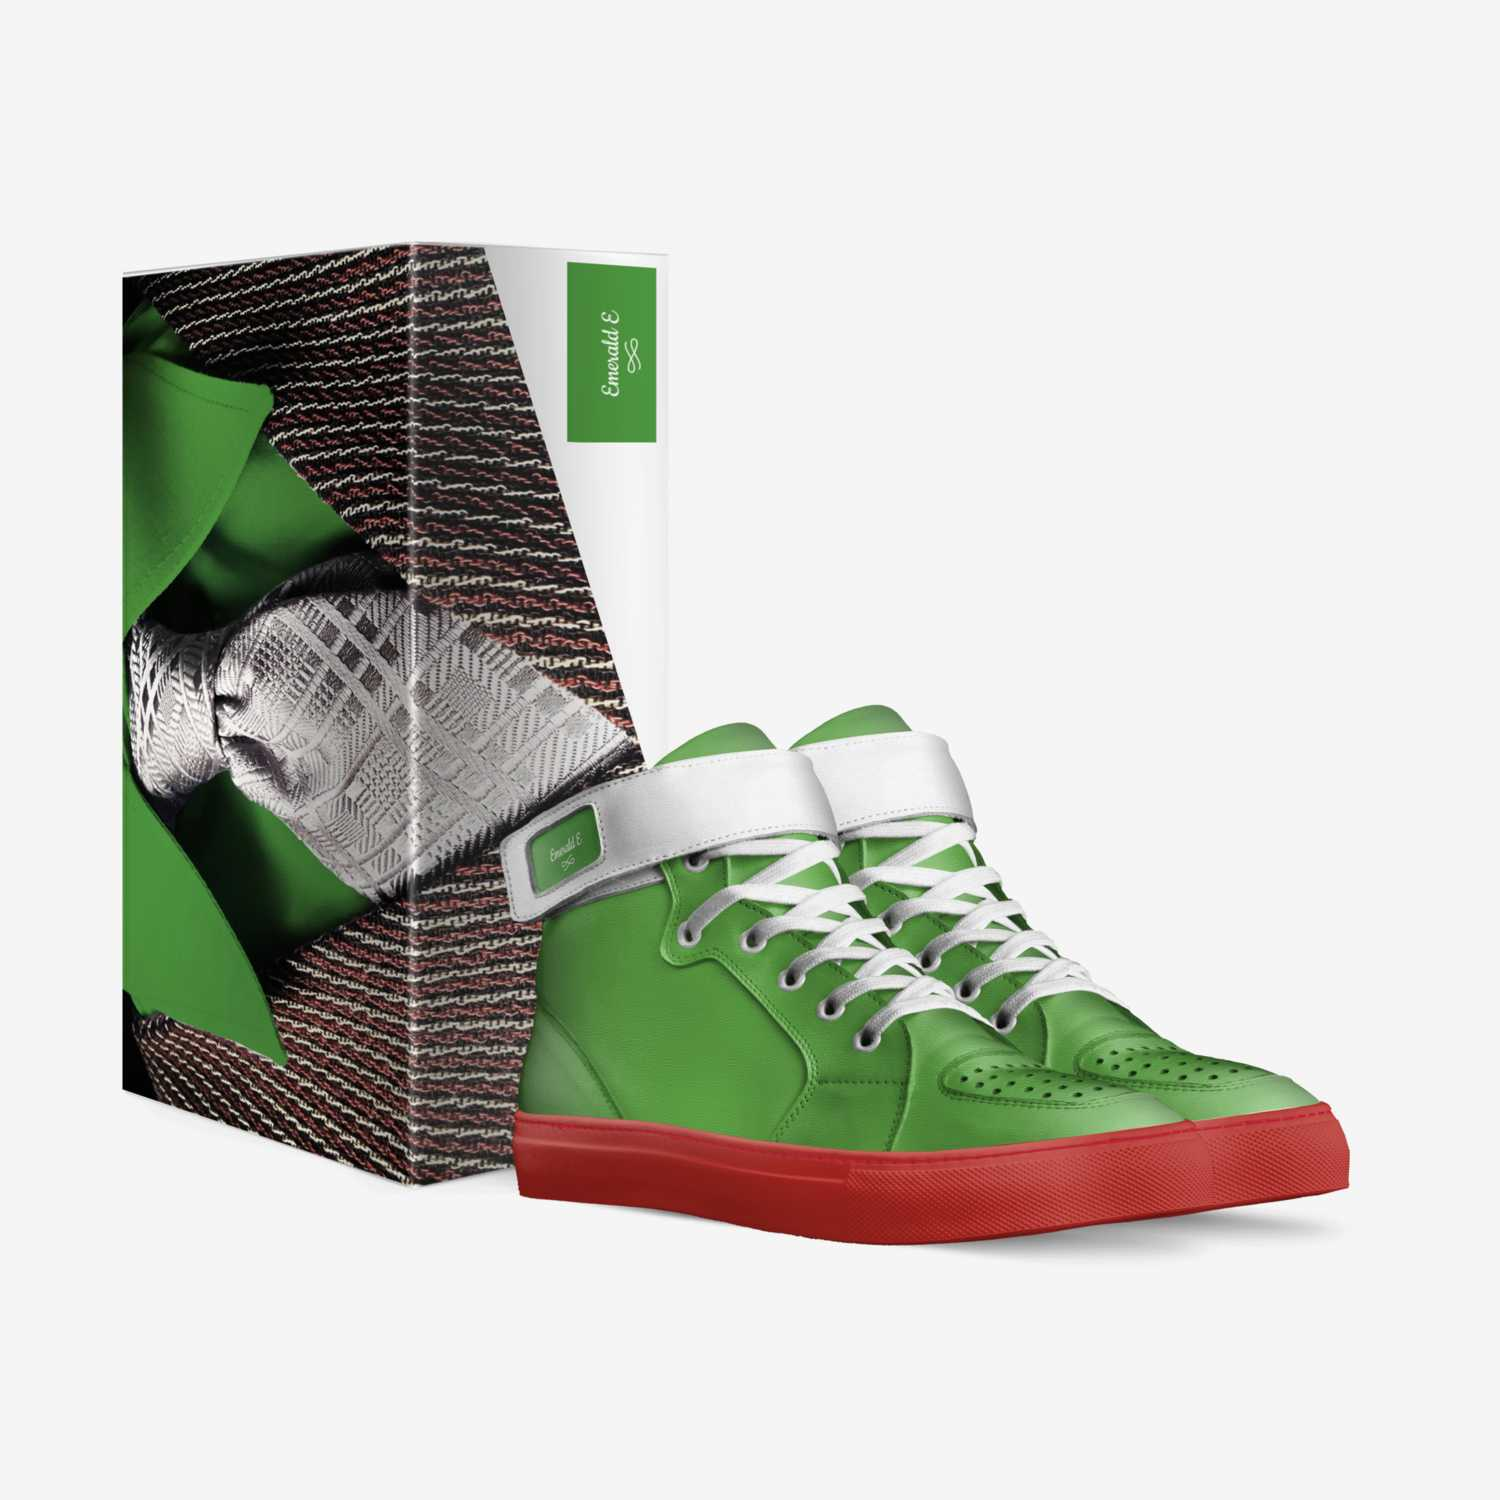 Emerald E custom made in Italy shoes by Ernest Sampson Iii | Box view